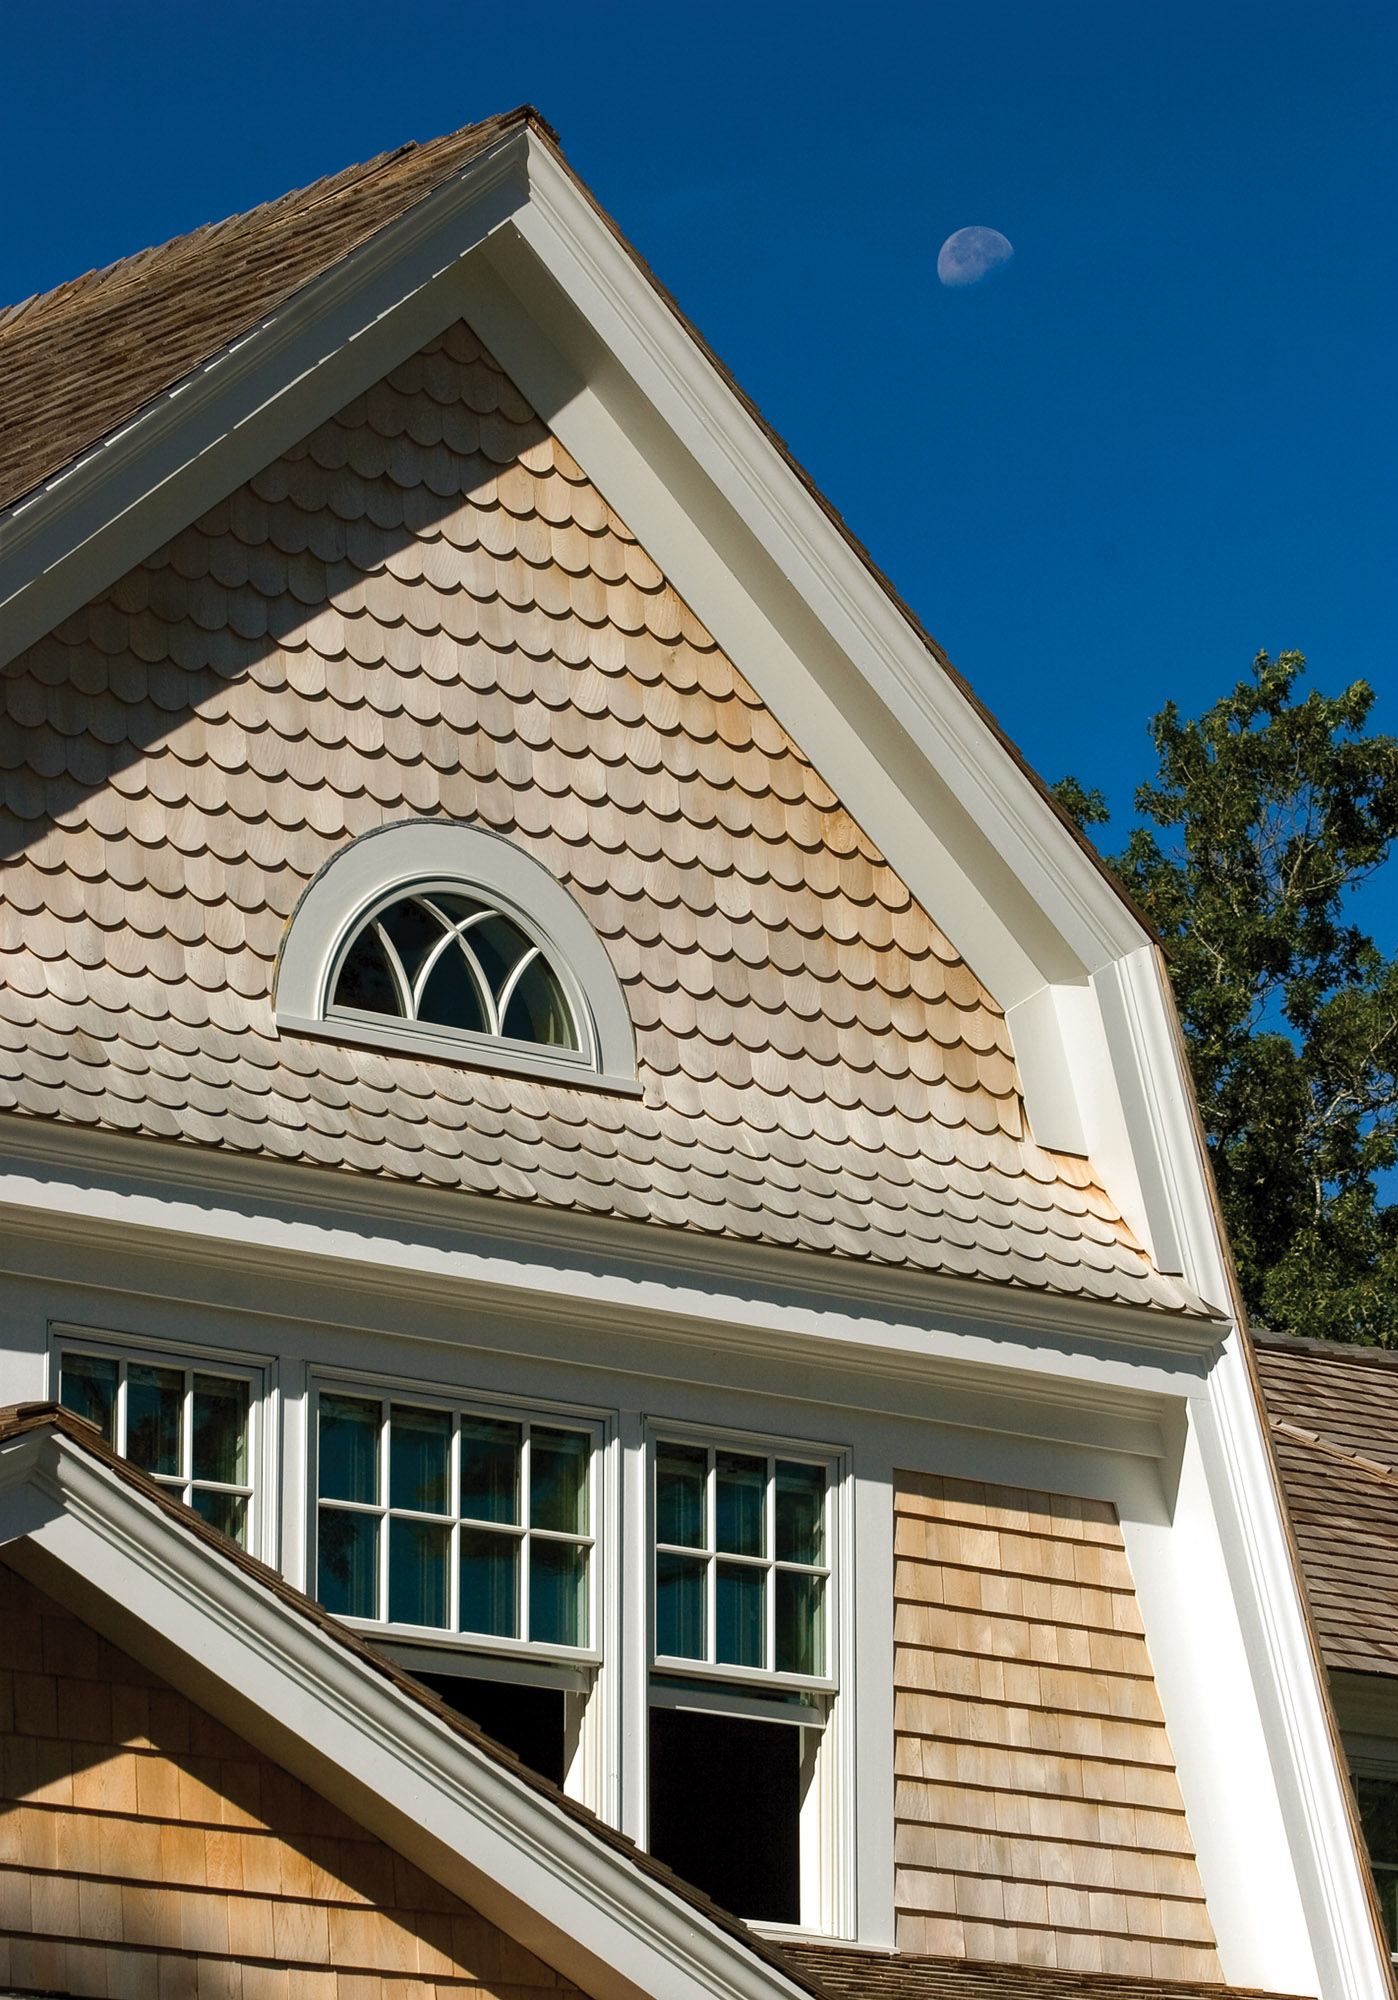 Square and fancy-butt white-cedar shingles